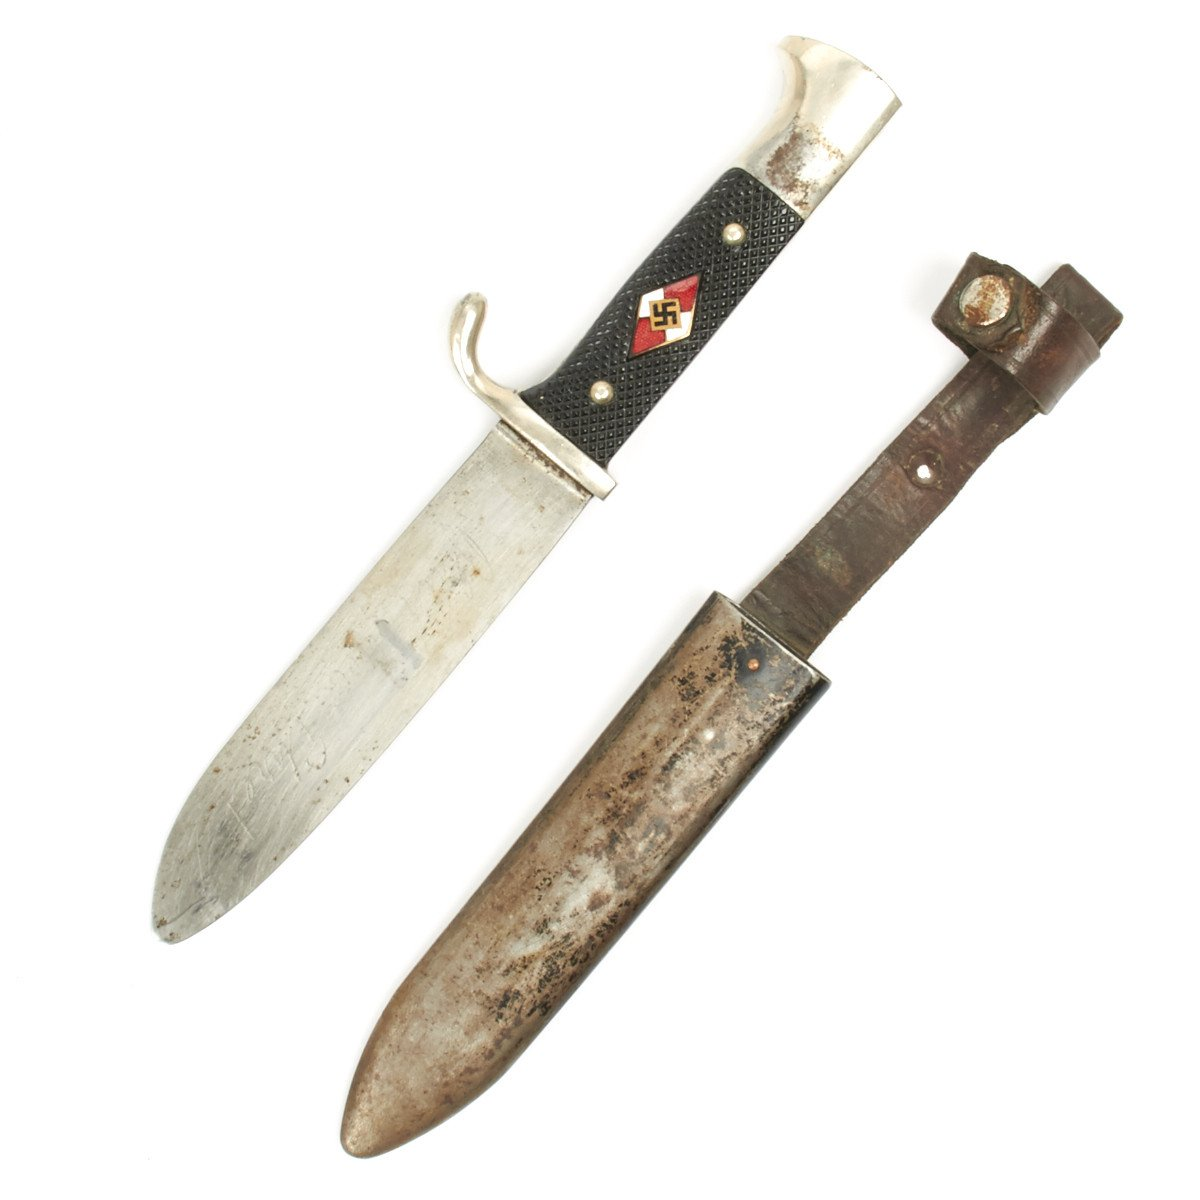 Original German WWII Hitler Youth Knife with Motto by